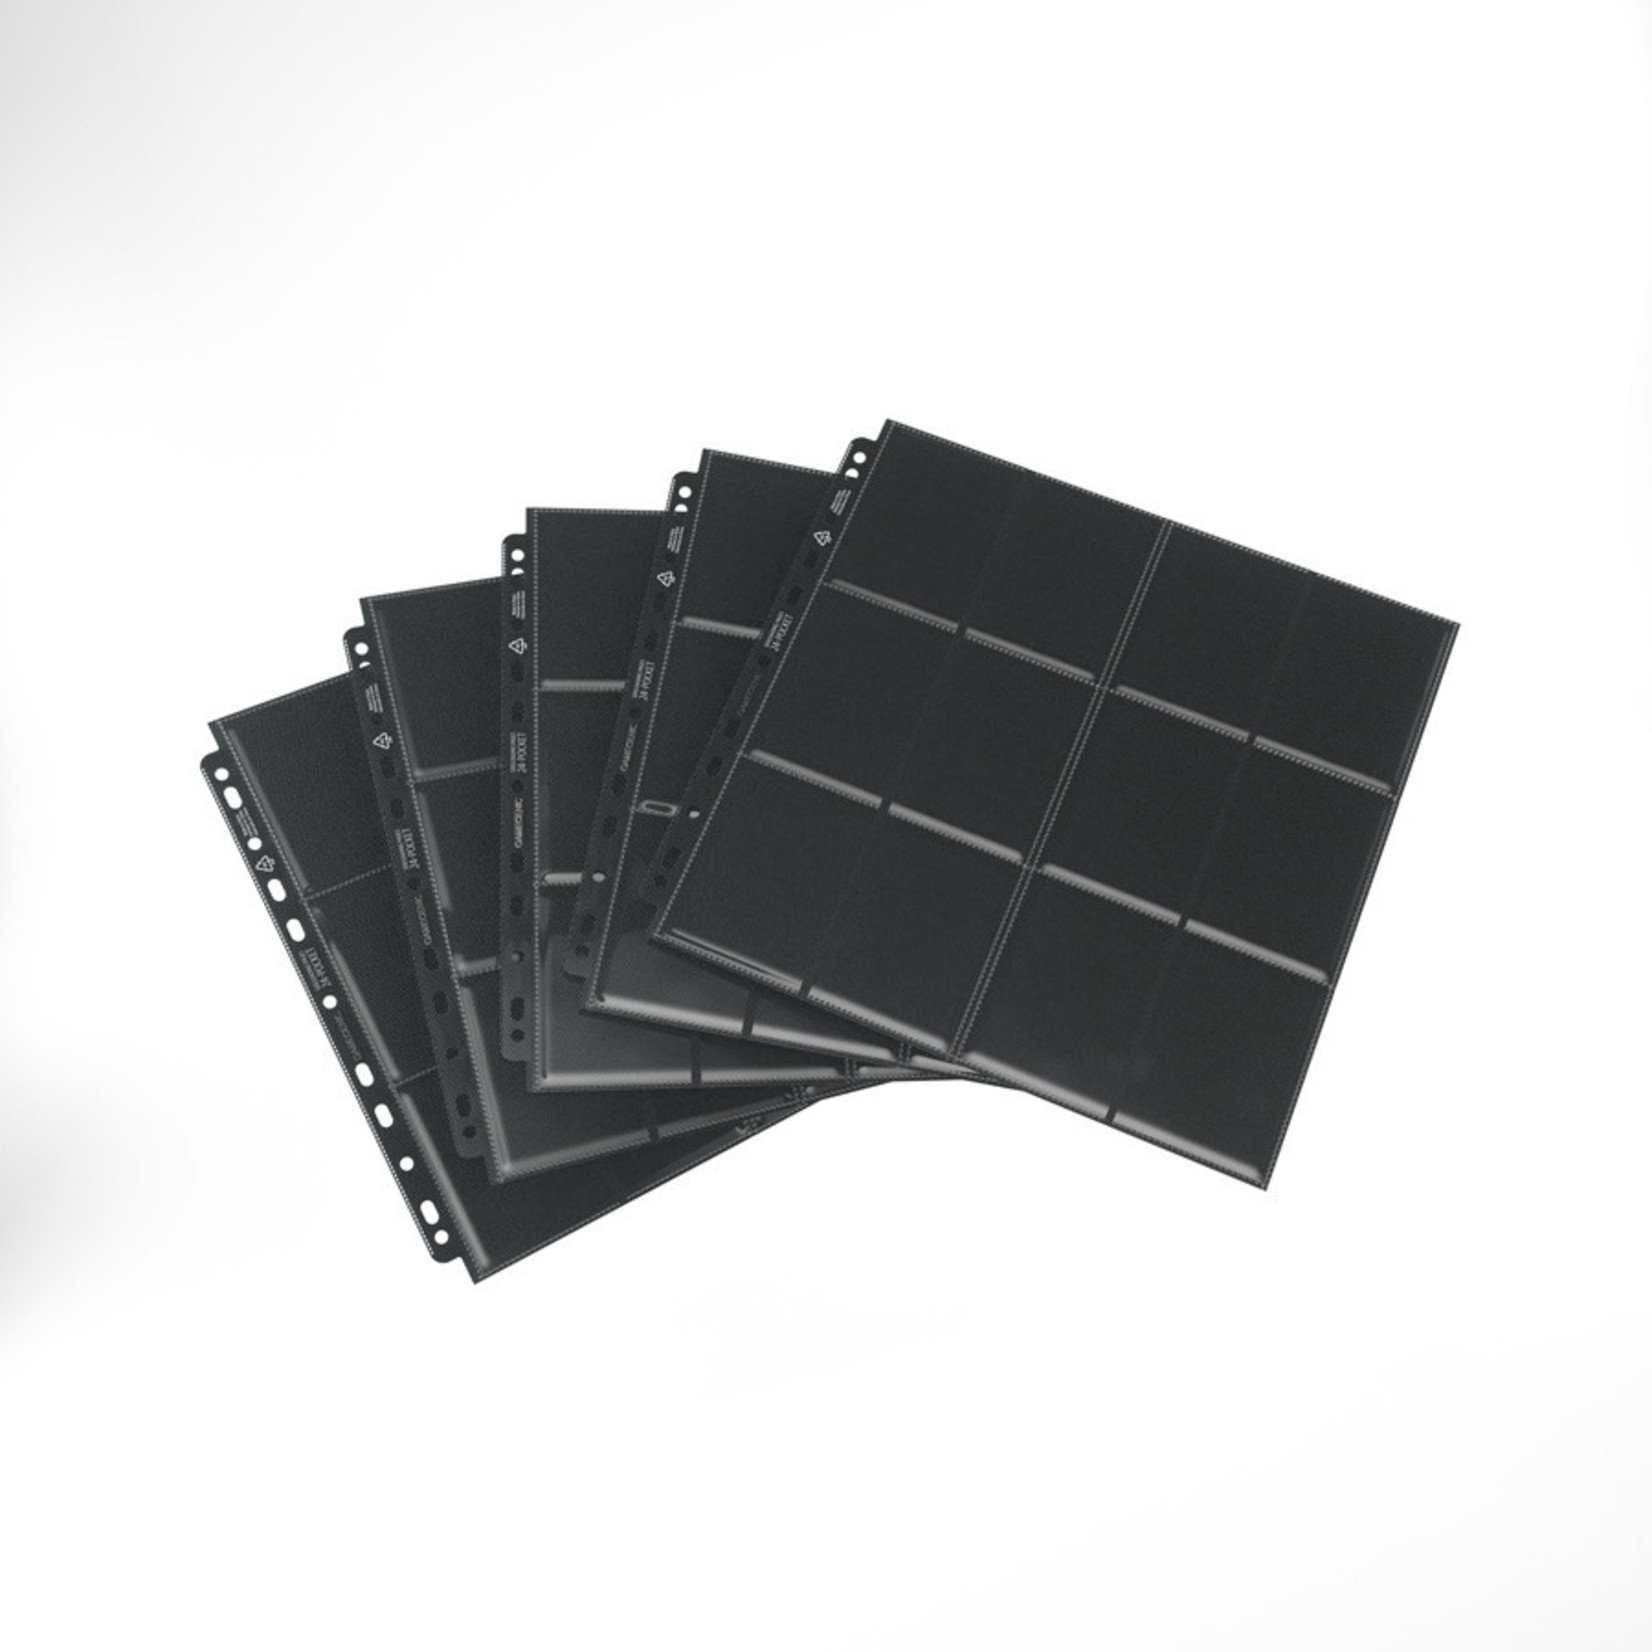 GAMEGEN!C 24-Pocket Sideloading Pages 10 pcs pack